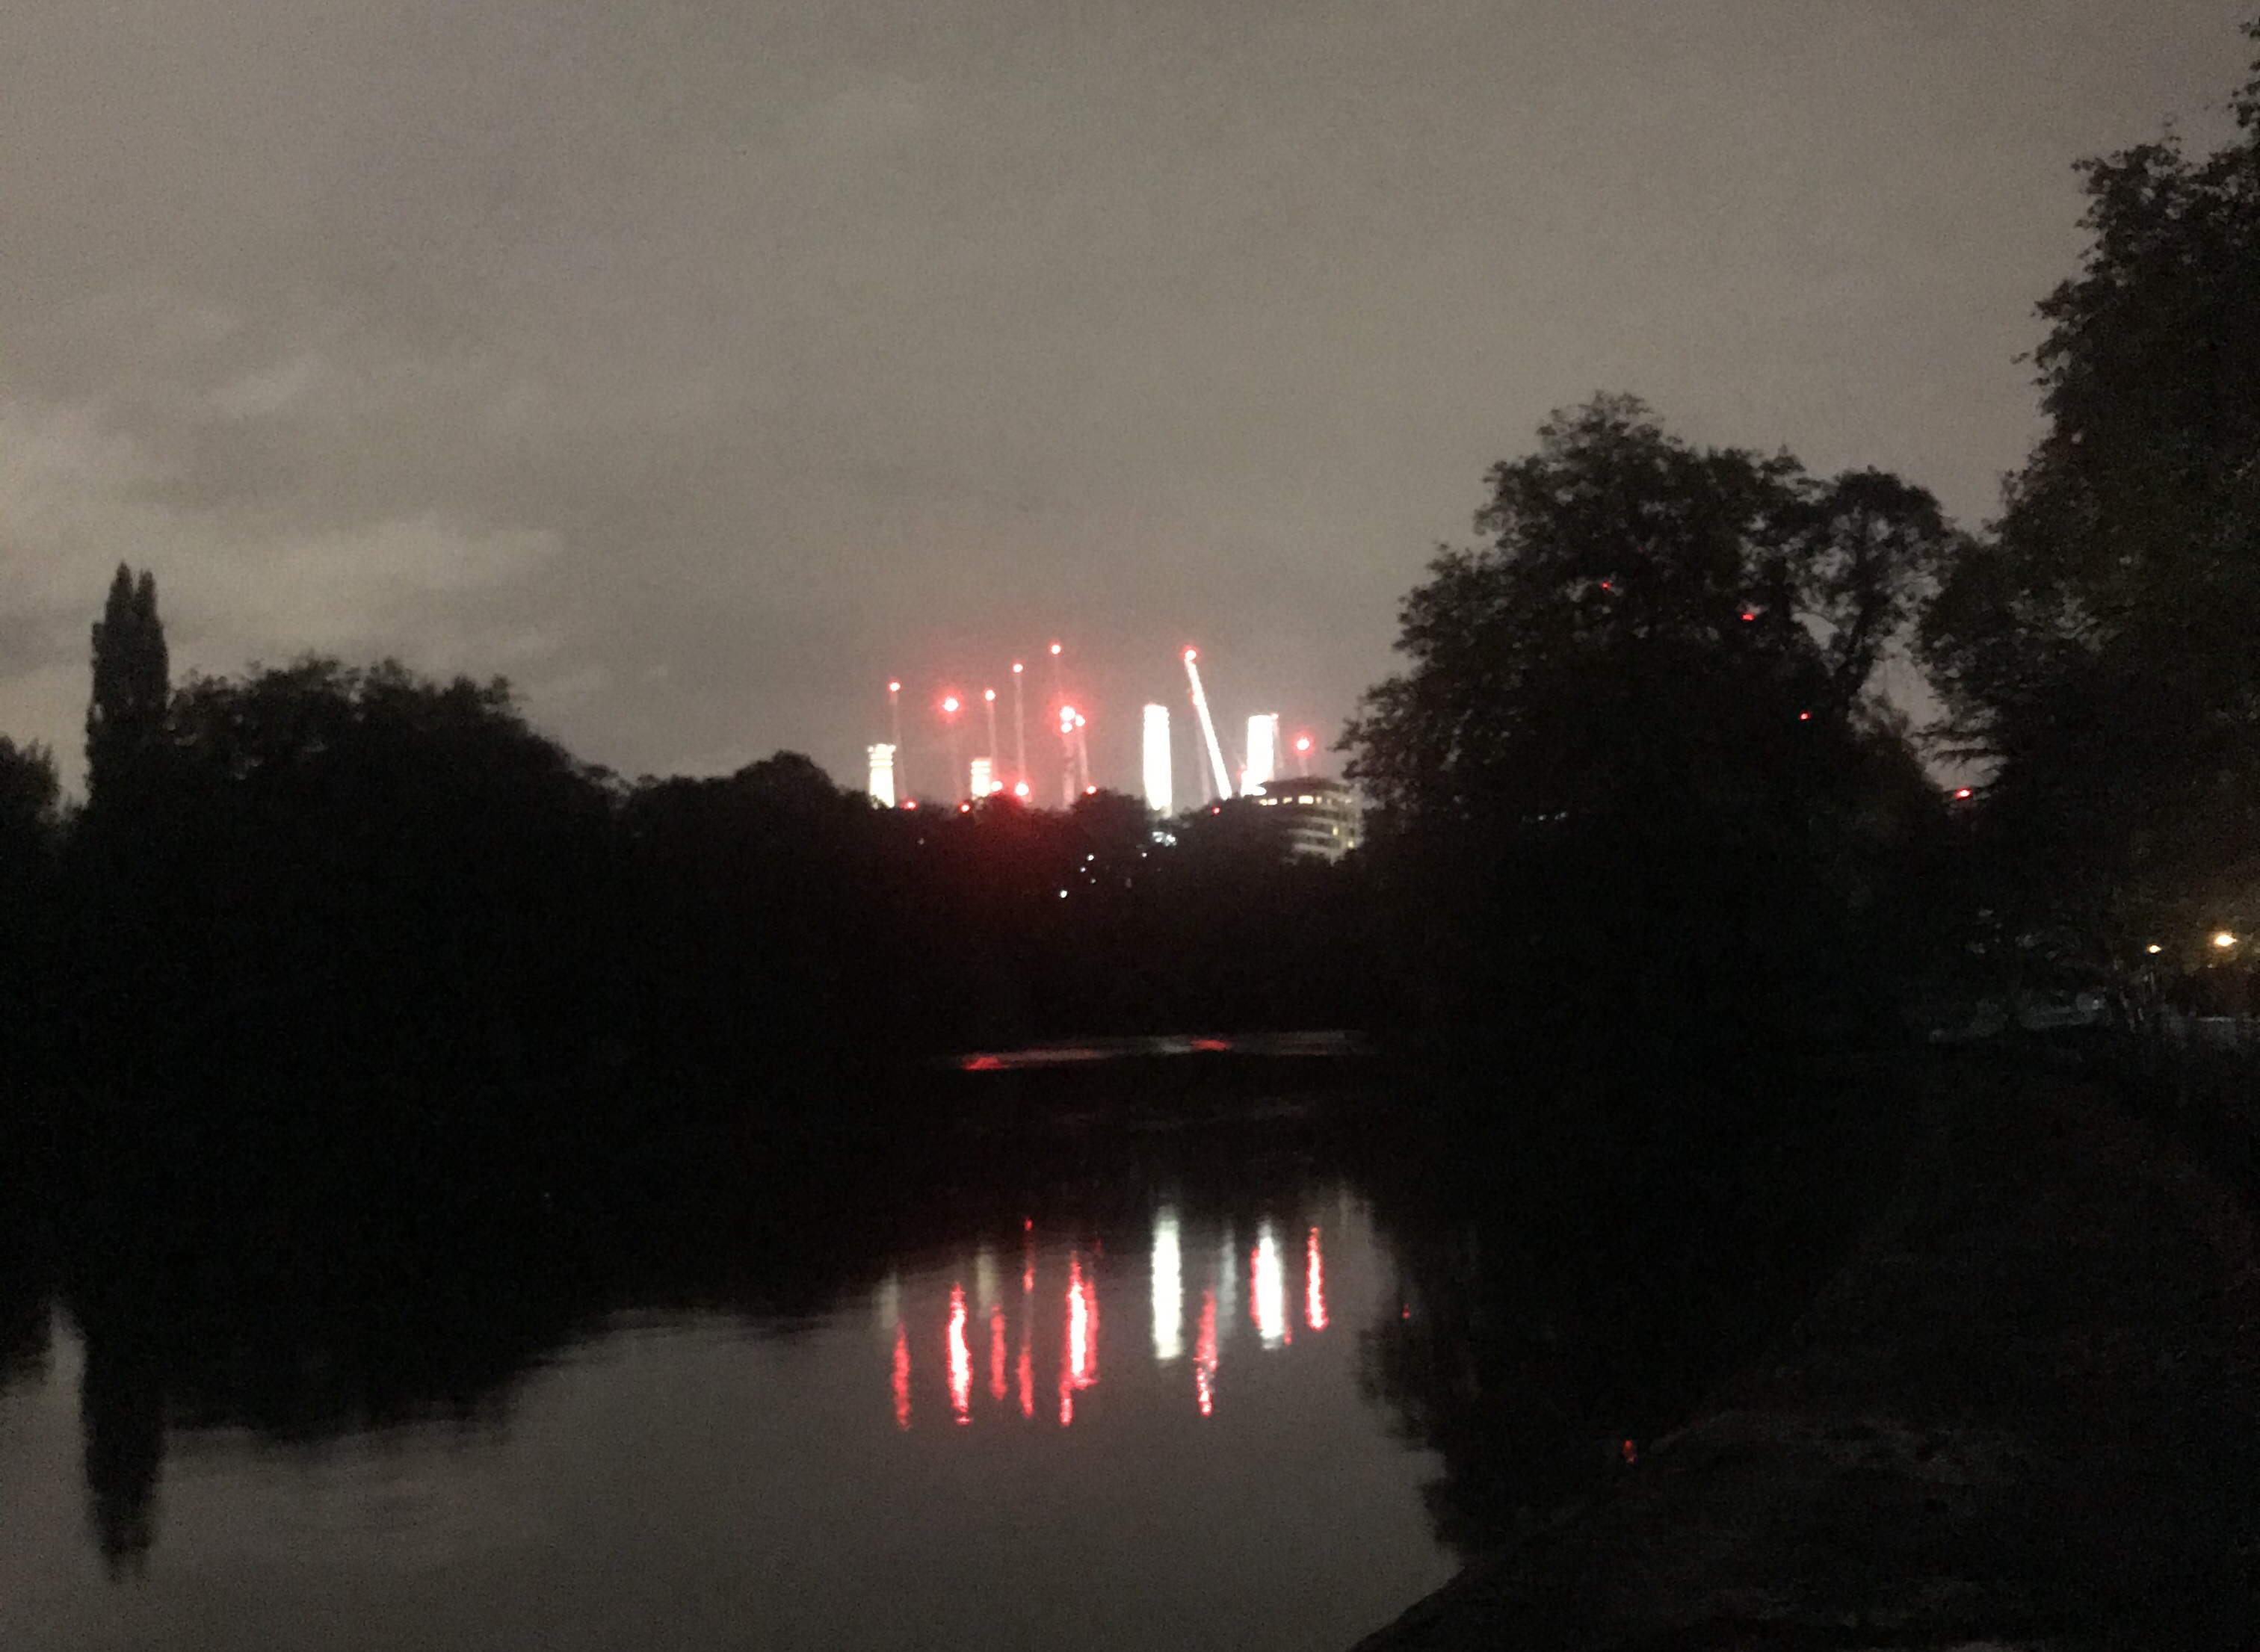 Reflections: Battersea Power Station